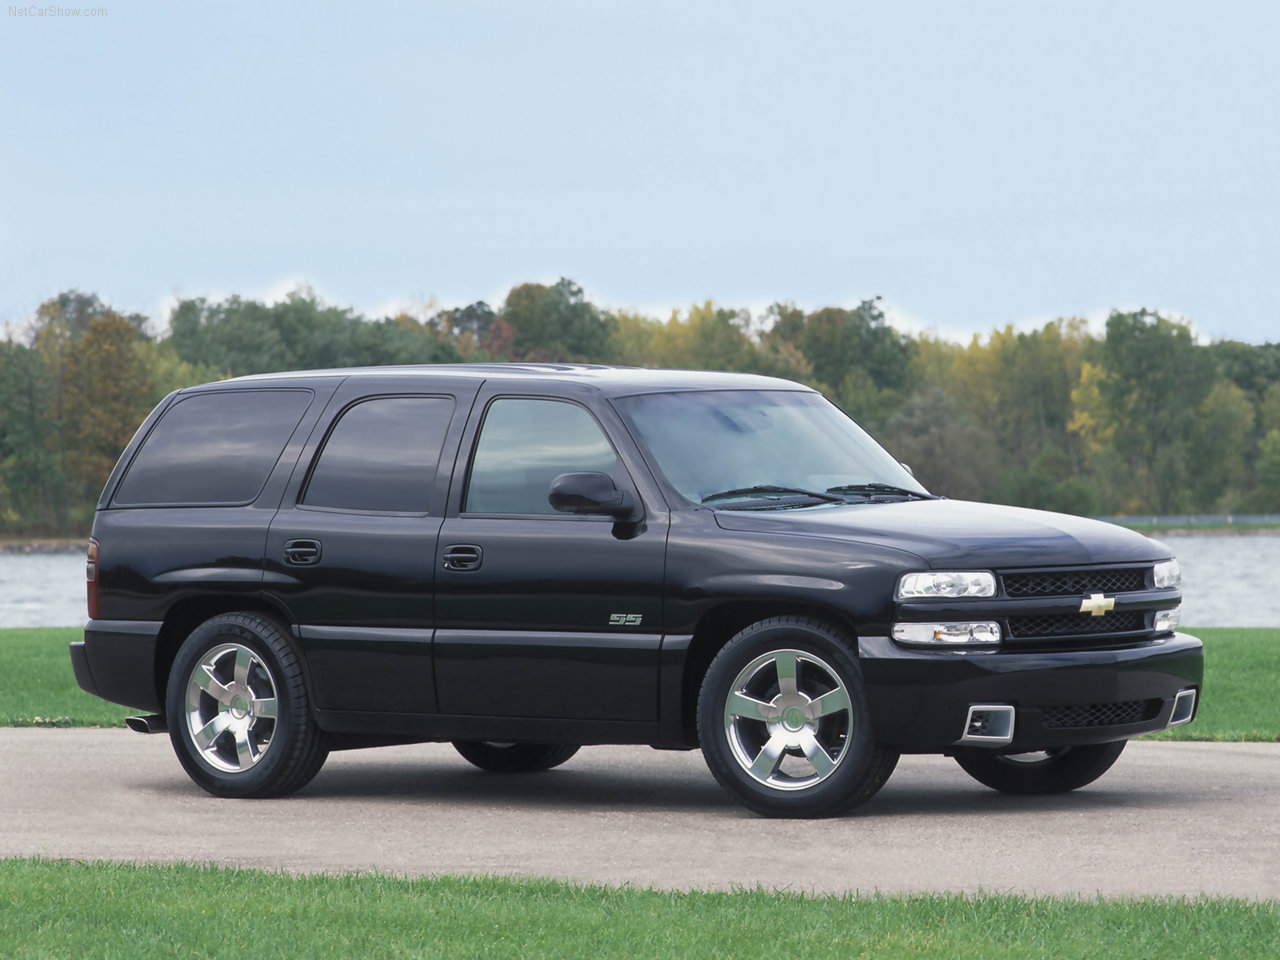 Chevrolet tahoe 2002 photo - 3